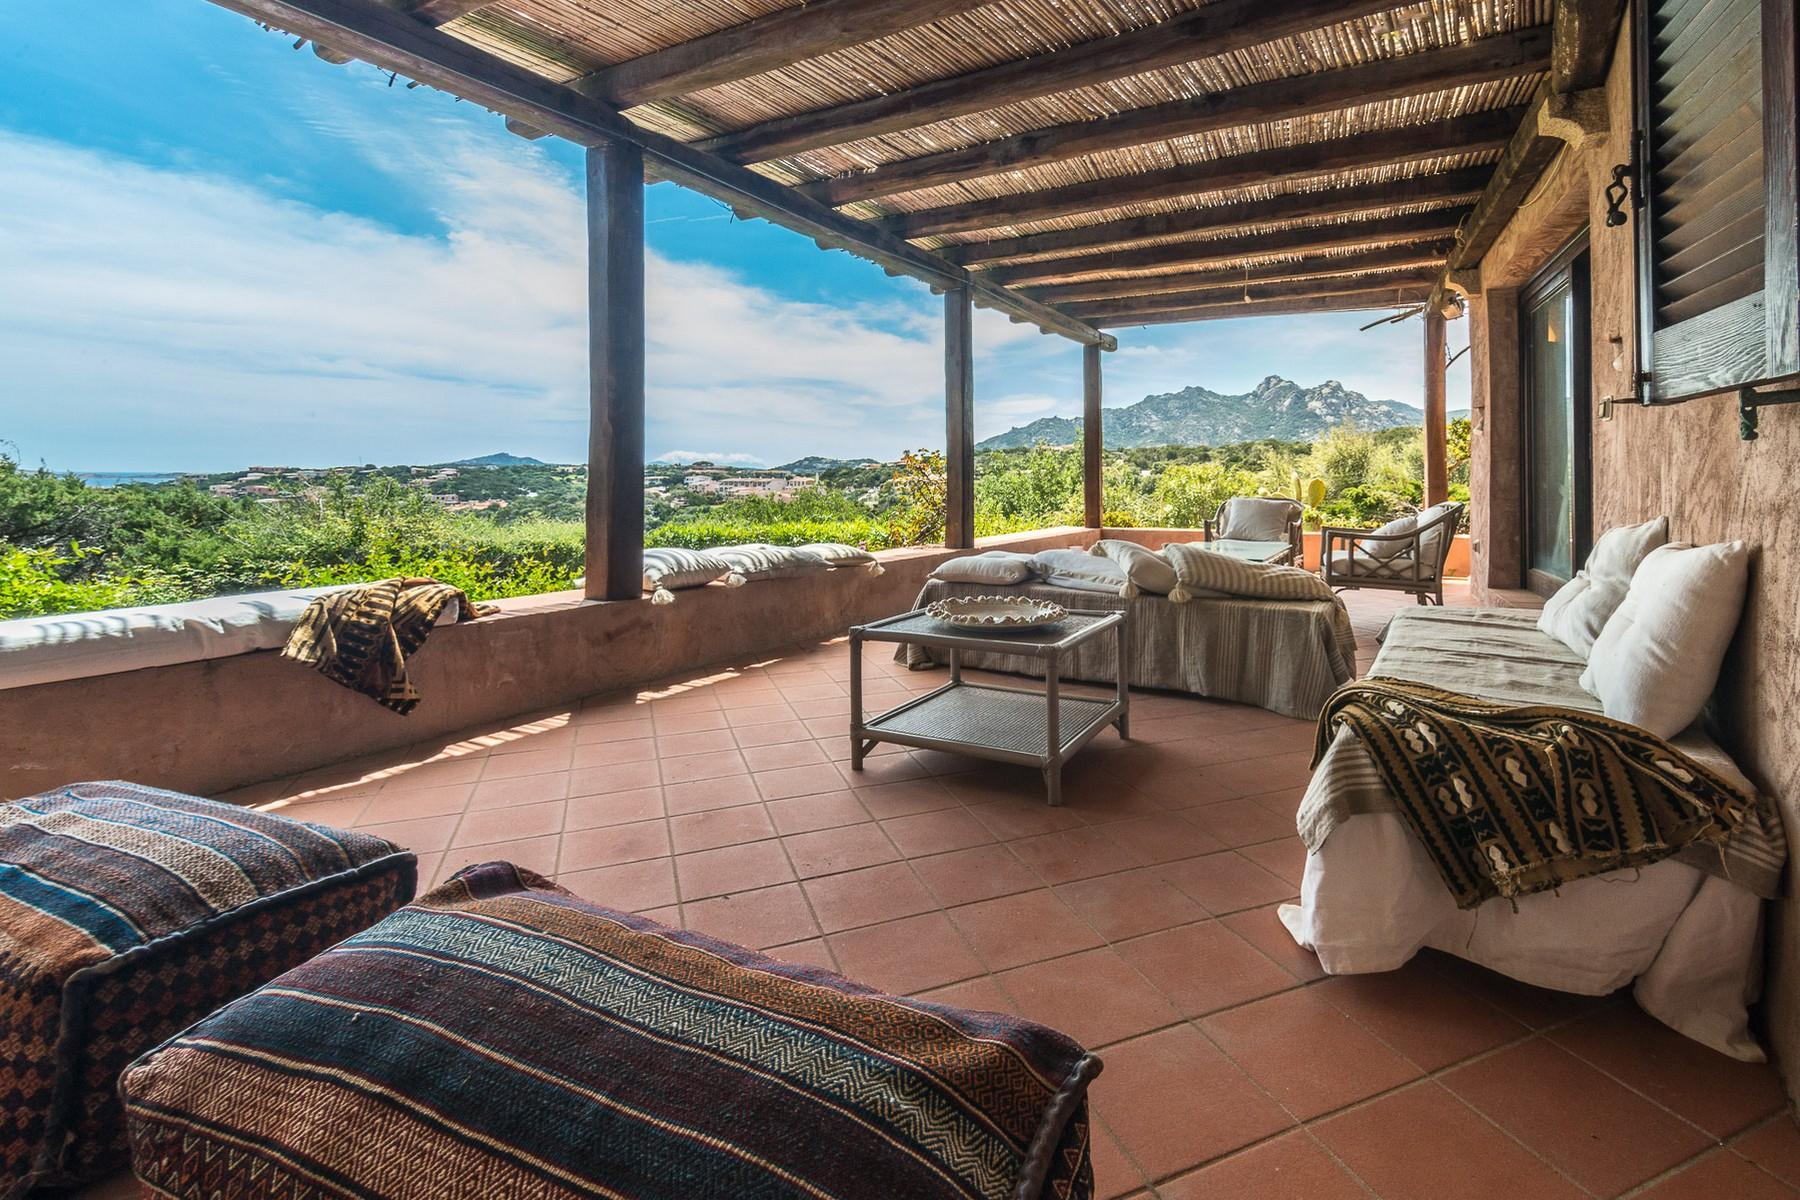 Porto Cervo Cala Granu Delightful Apartment a few steps from the beach - 6